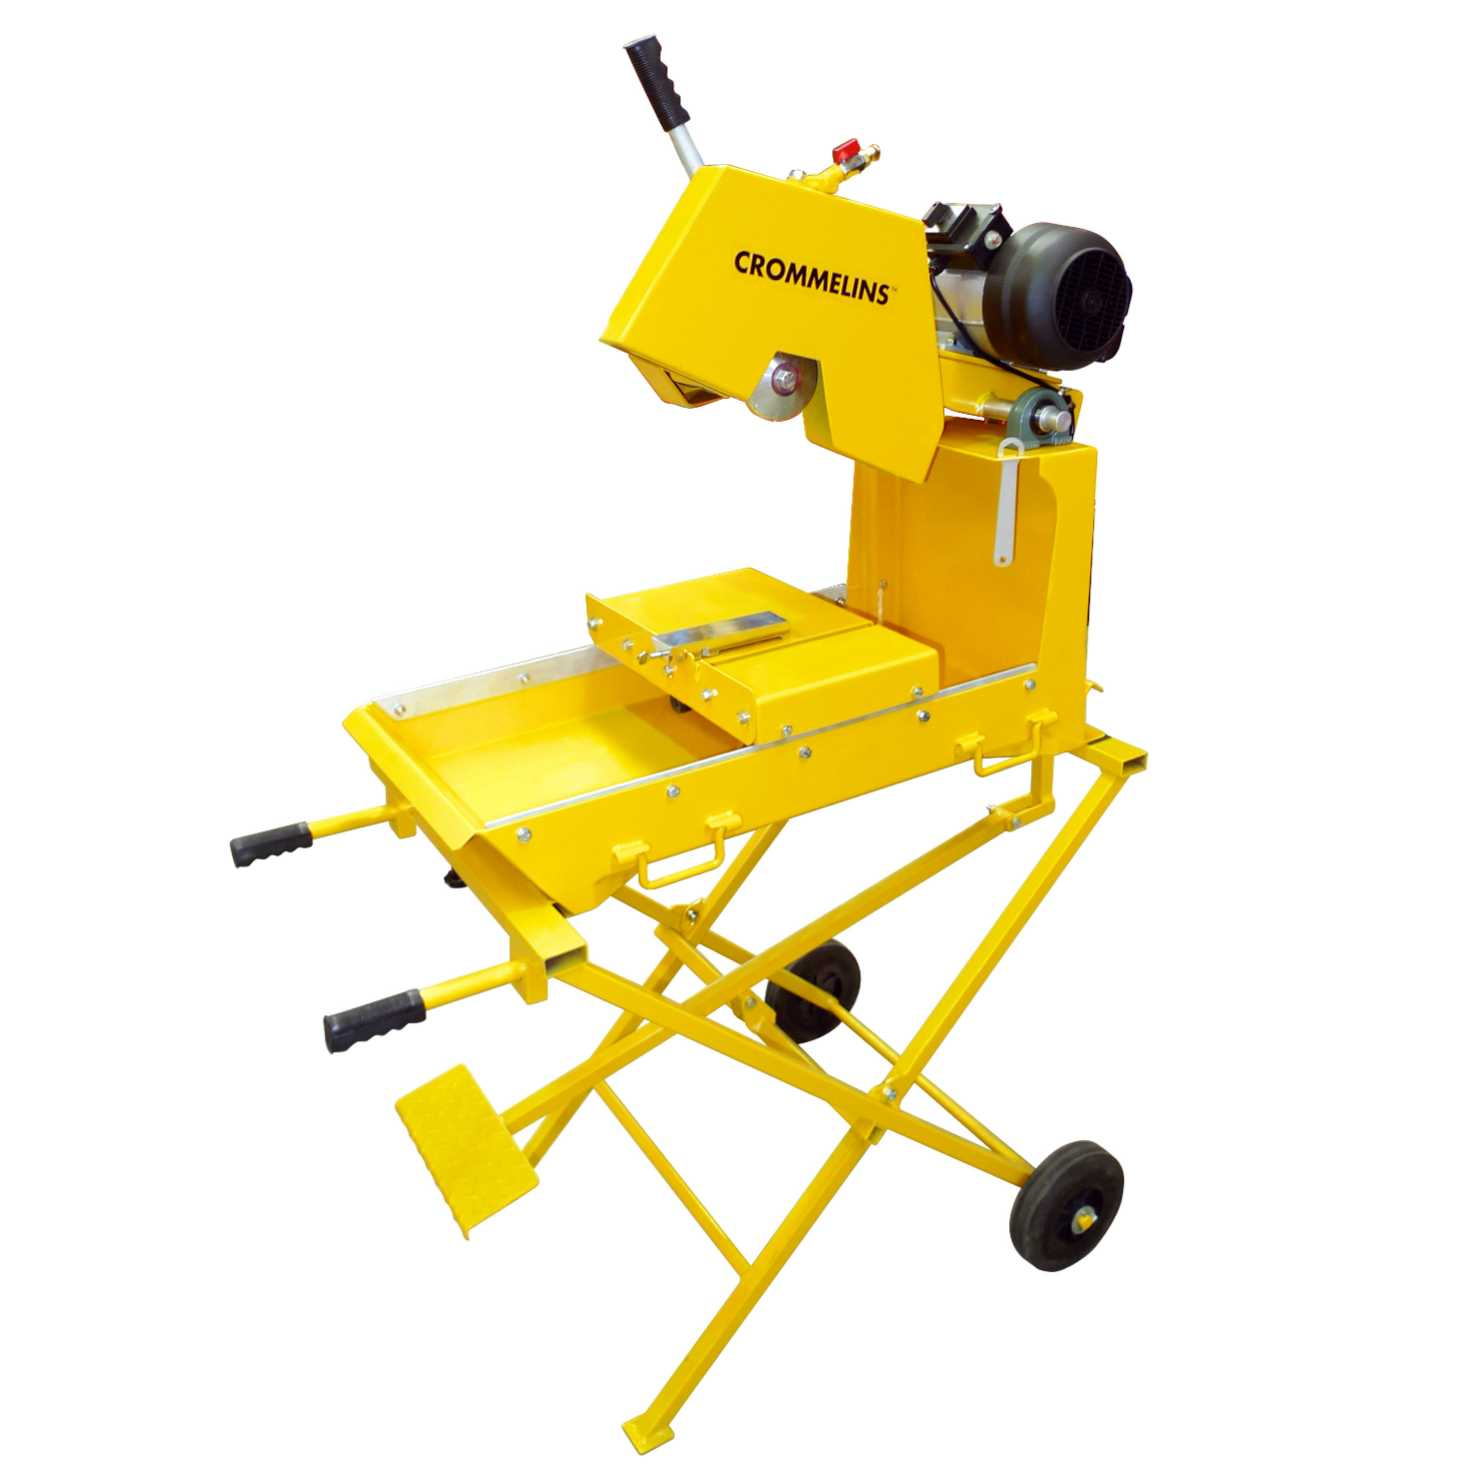 HERCULES HIRE - Cromelins Wet Block and Brick Saw for hire $100/day, pickup from Rocklea